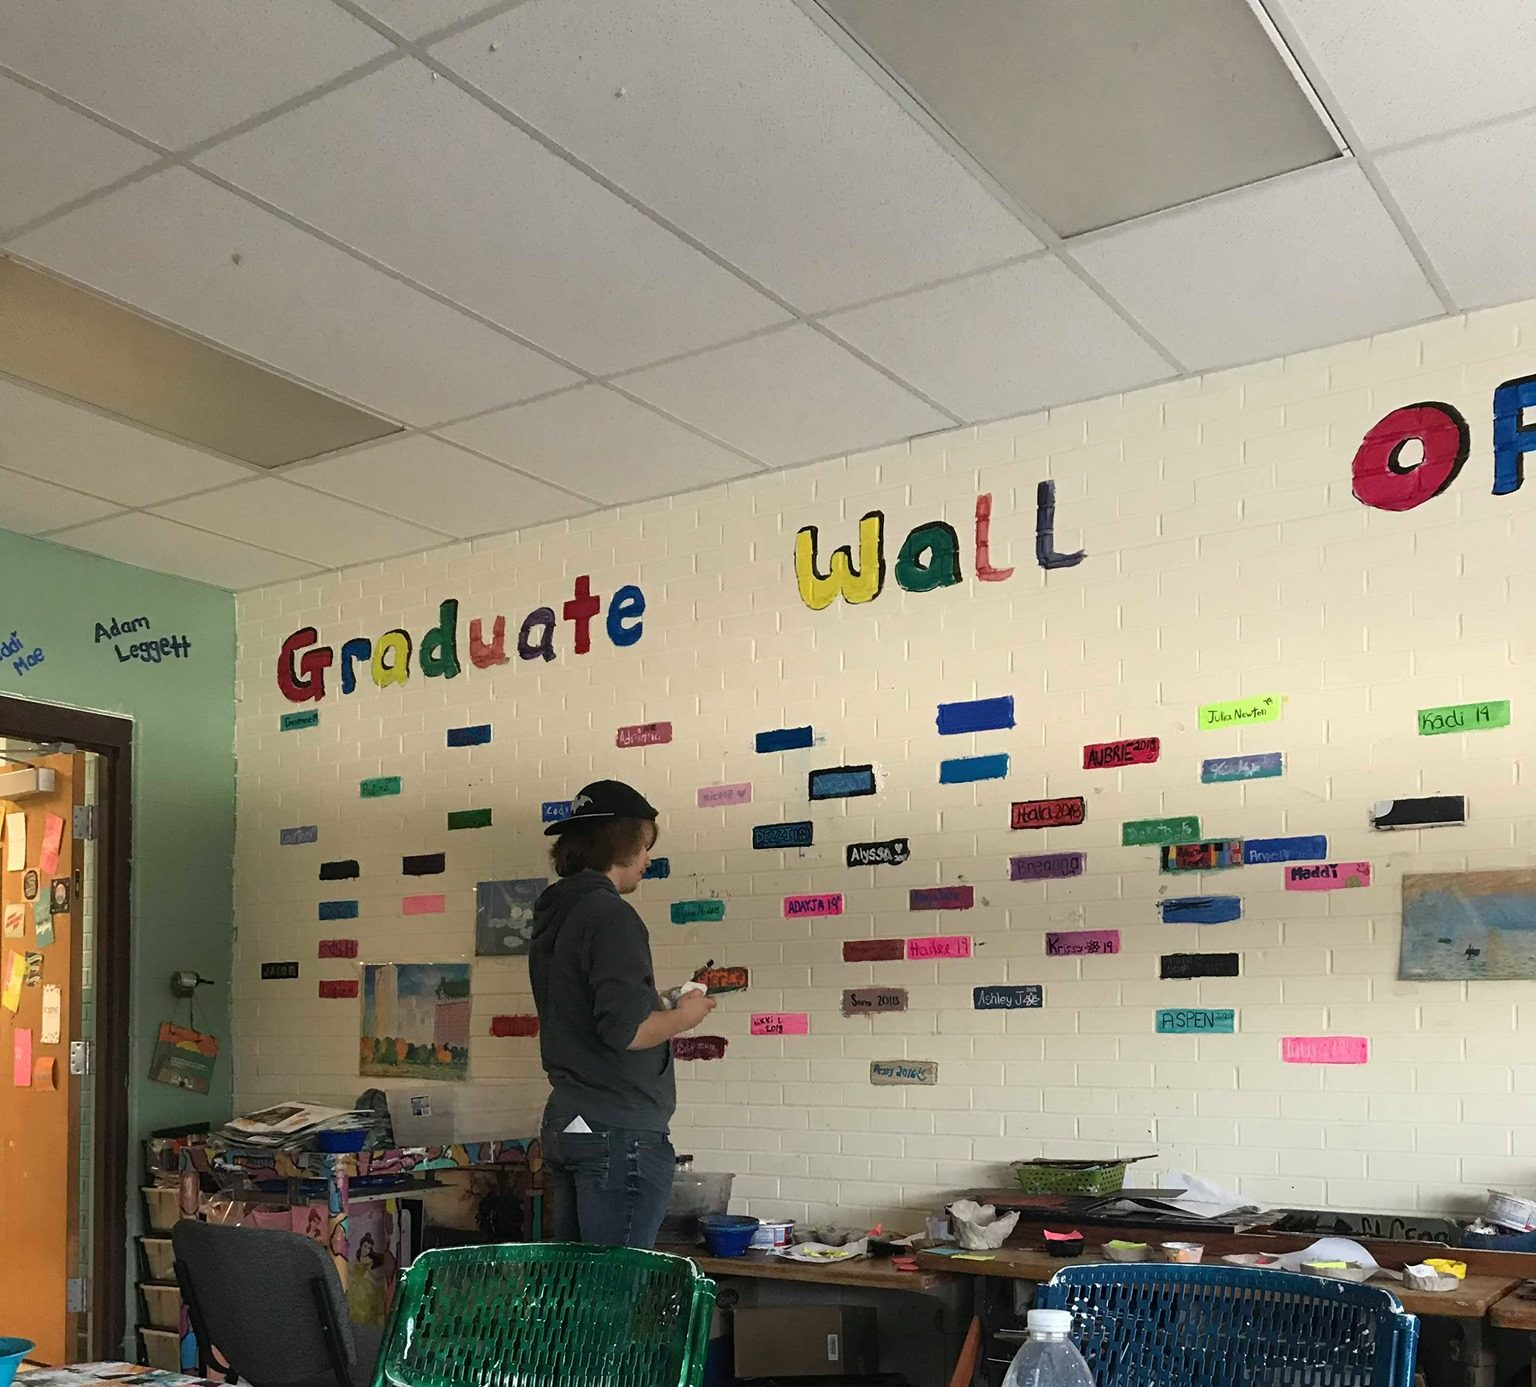 high school graduation wall with student